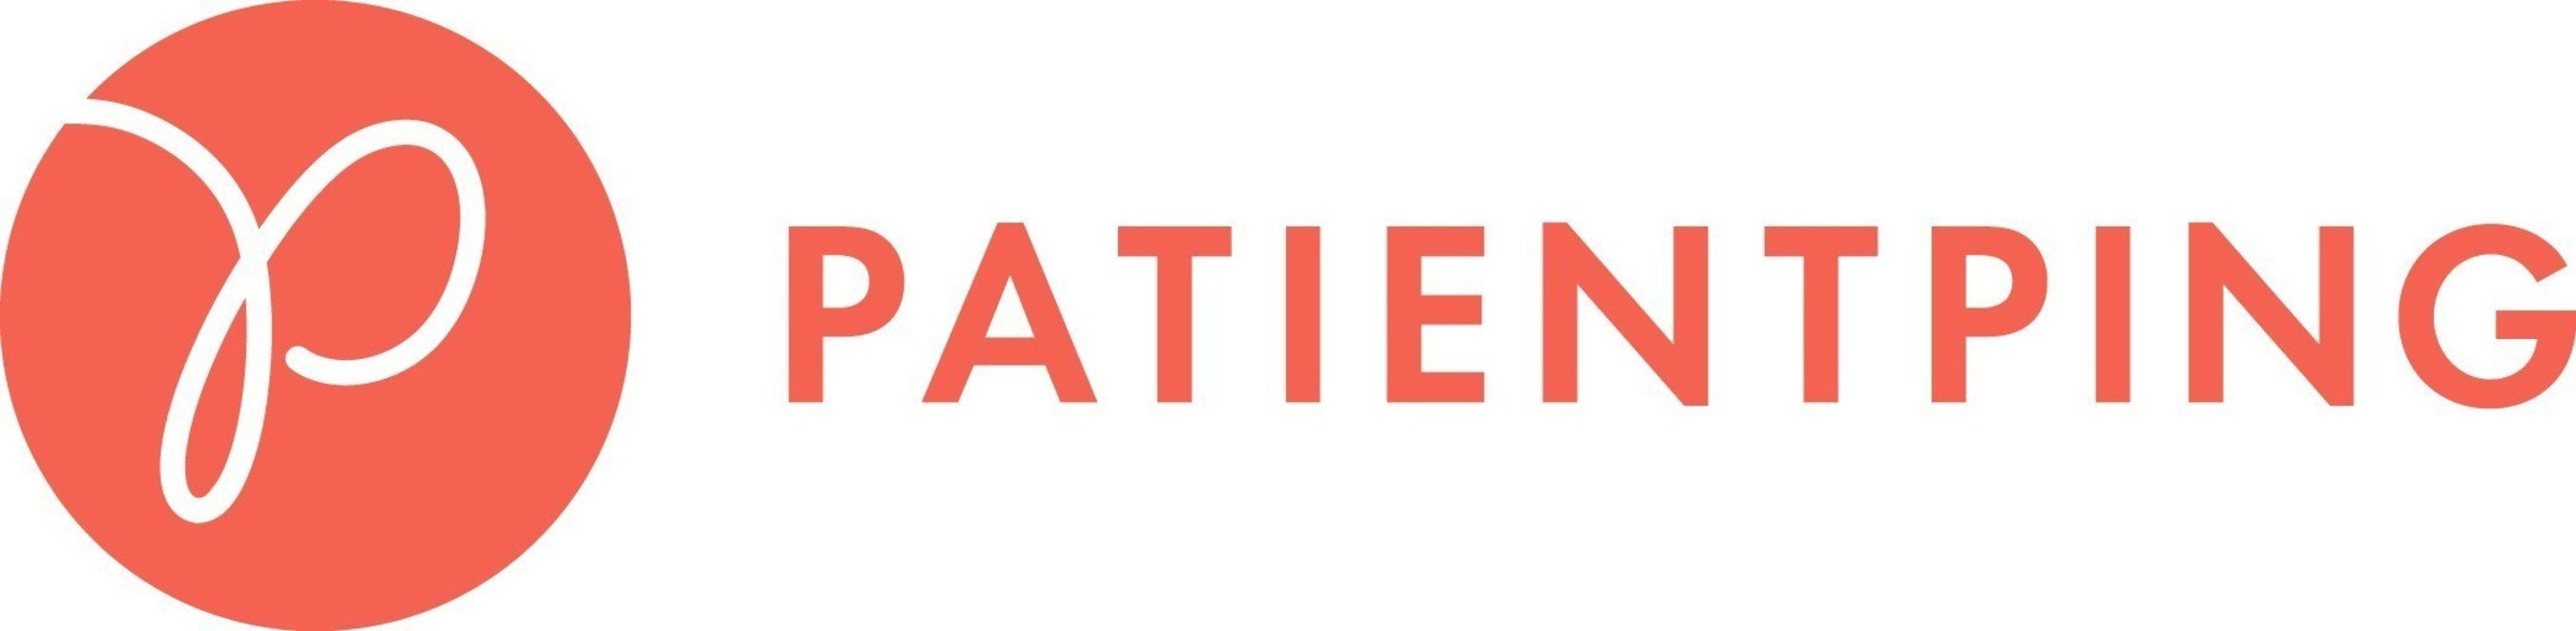 "PatientPing Raises $31.6 Million from Andreessen Horowitz and Leerink Transformation Partners to Accelerate Growth of its National Care Coordination Network. PatientPing's flagship product offers real-time notifications (""Pings"") to health care providers whenever their patients experience an admit, transfer or discharge to or from a facility. The Company has become the country's leading provider of clinical event notifications, creating the nation's largest community of providers working together to coordinate patient care. ""We are just getting started,"" said Jay Desai, founder & CEO, PatientPing. ""It's an important moment in history to modernize our country's healthcare IT infrastructure."